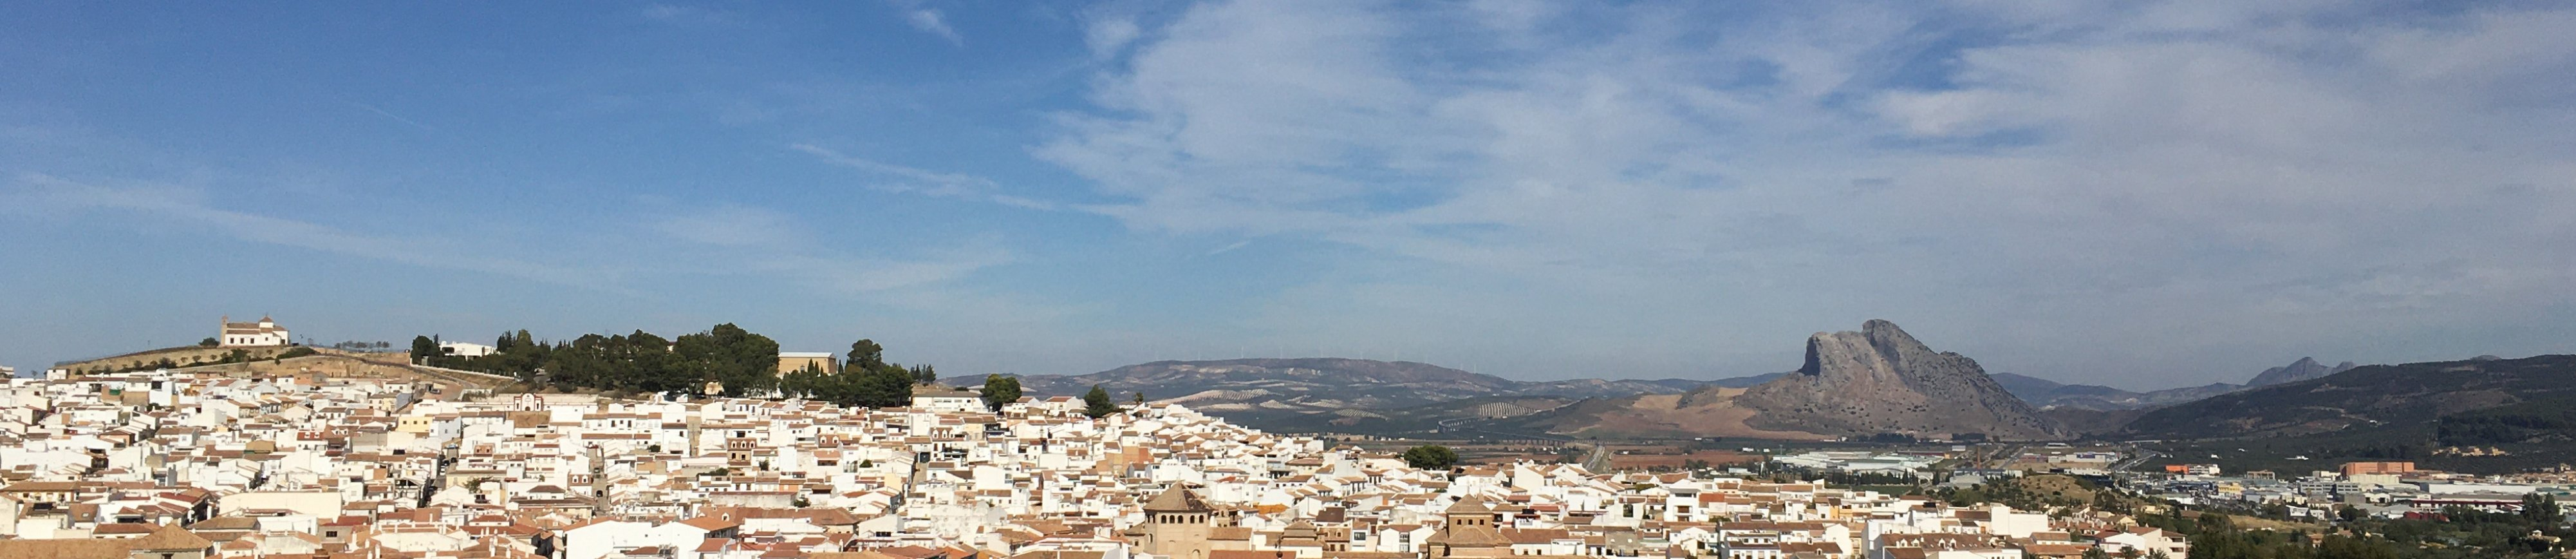 Andalucia banner image